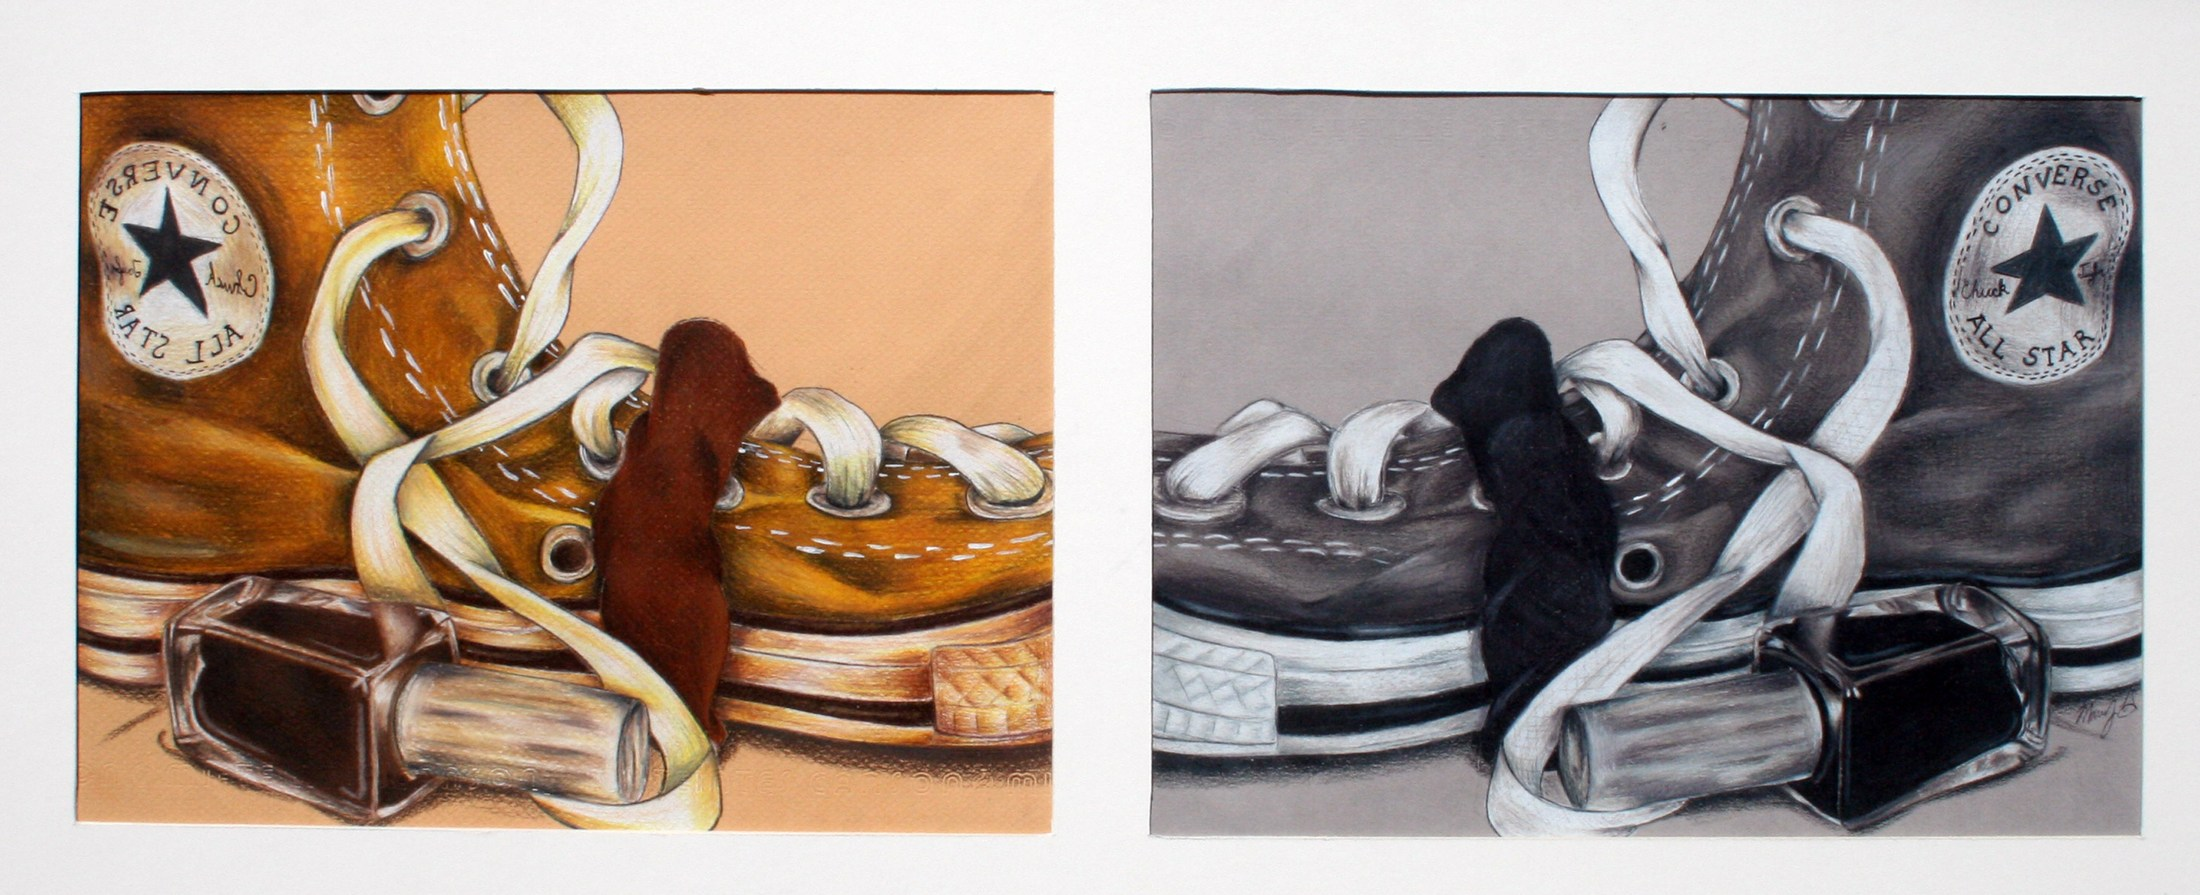 drawings of converse tennis shoes